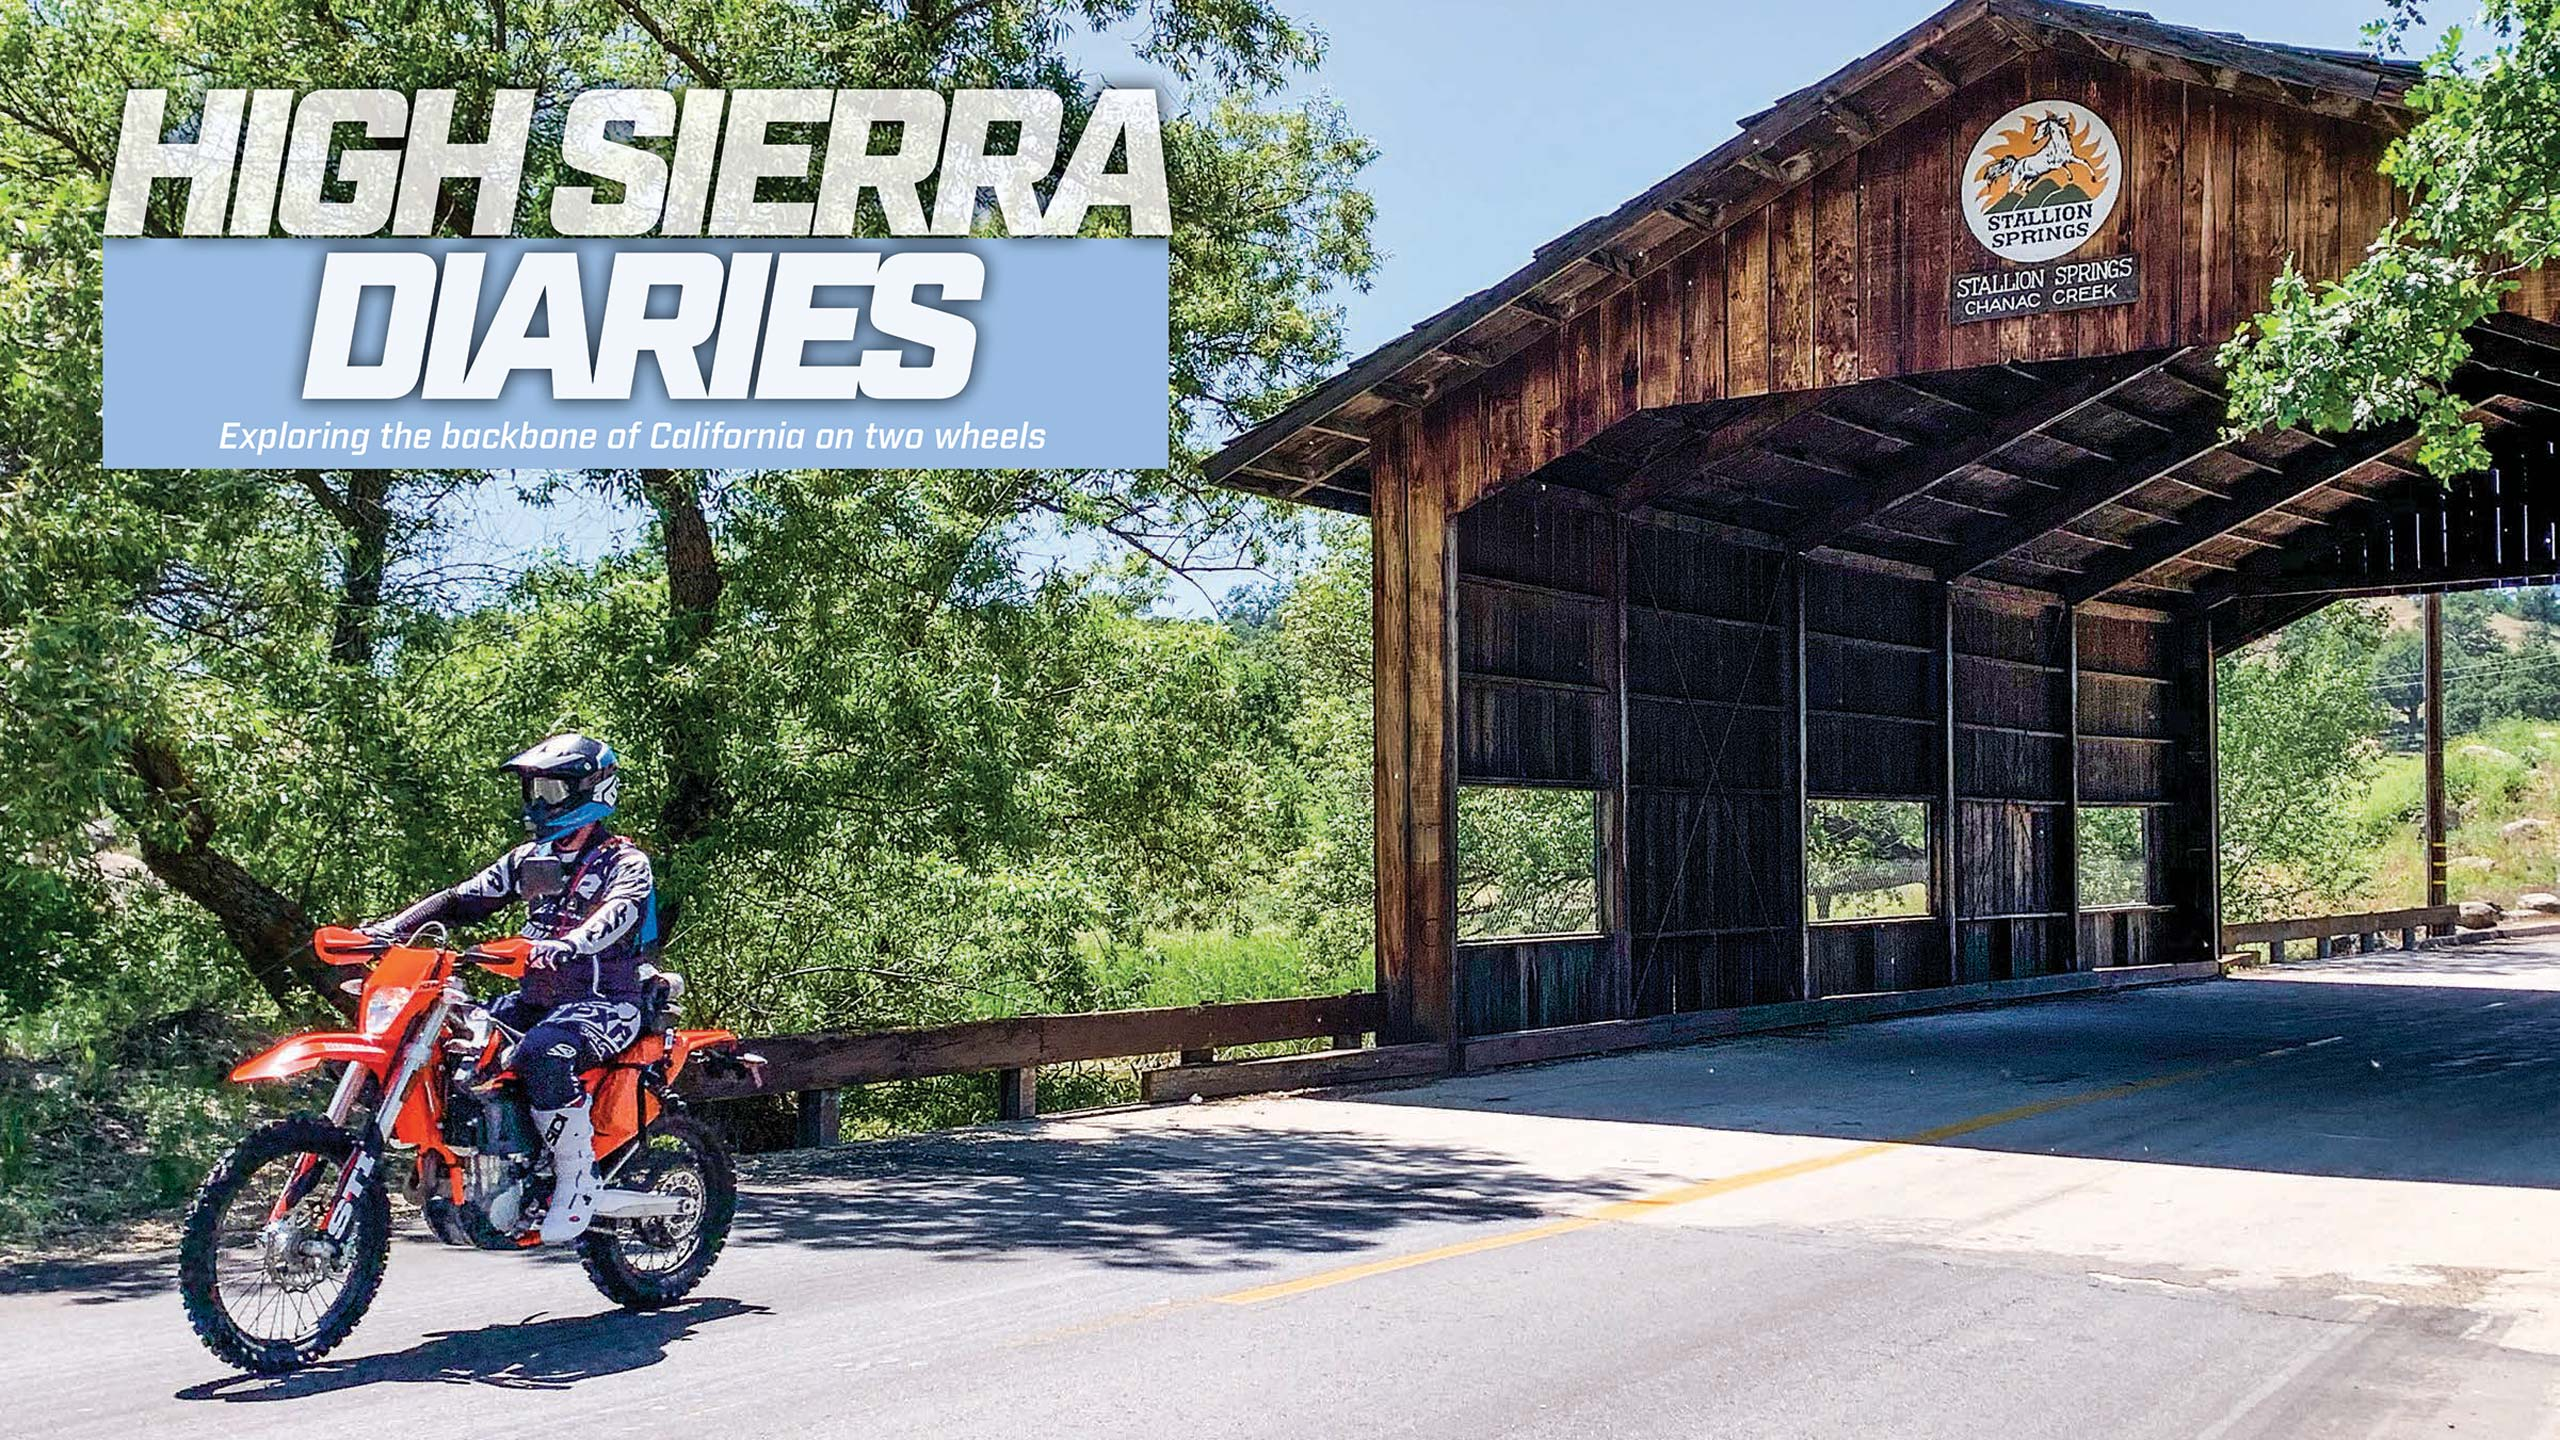 high-sierra-diaries-dirtbikemag-exploring-california